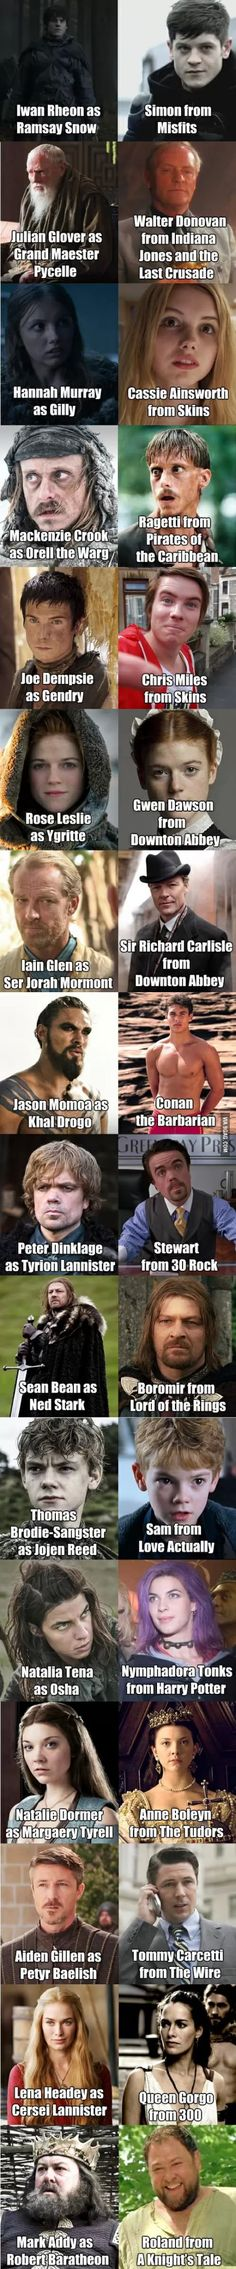 Game of Thrones characters on other shows